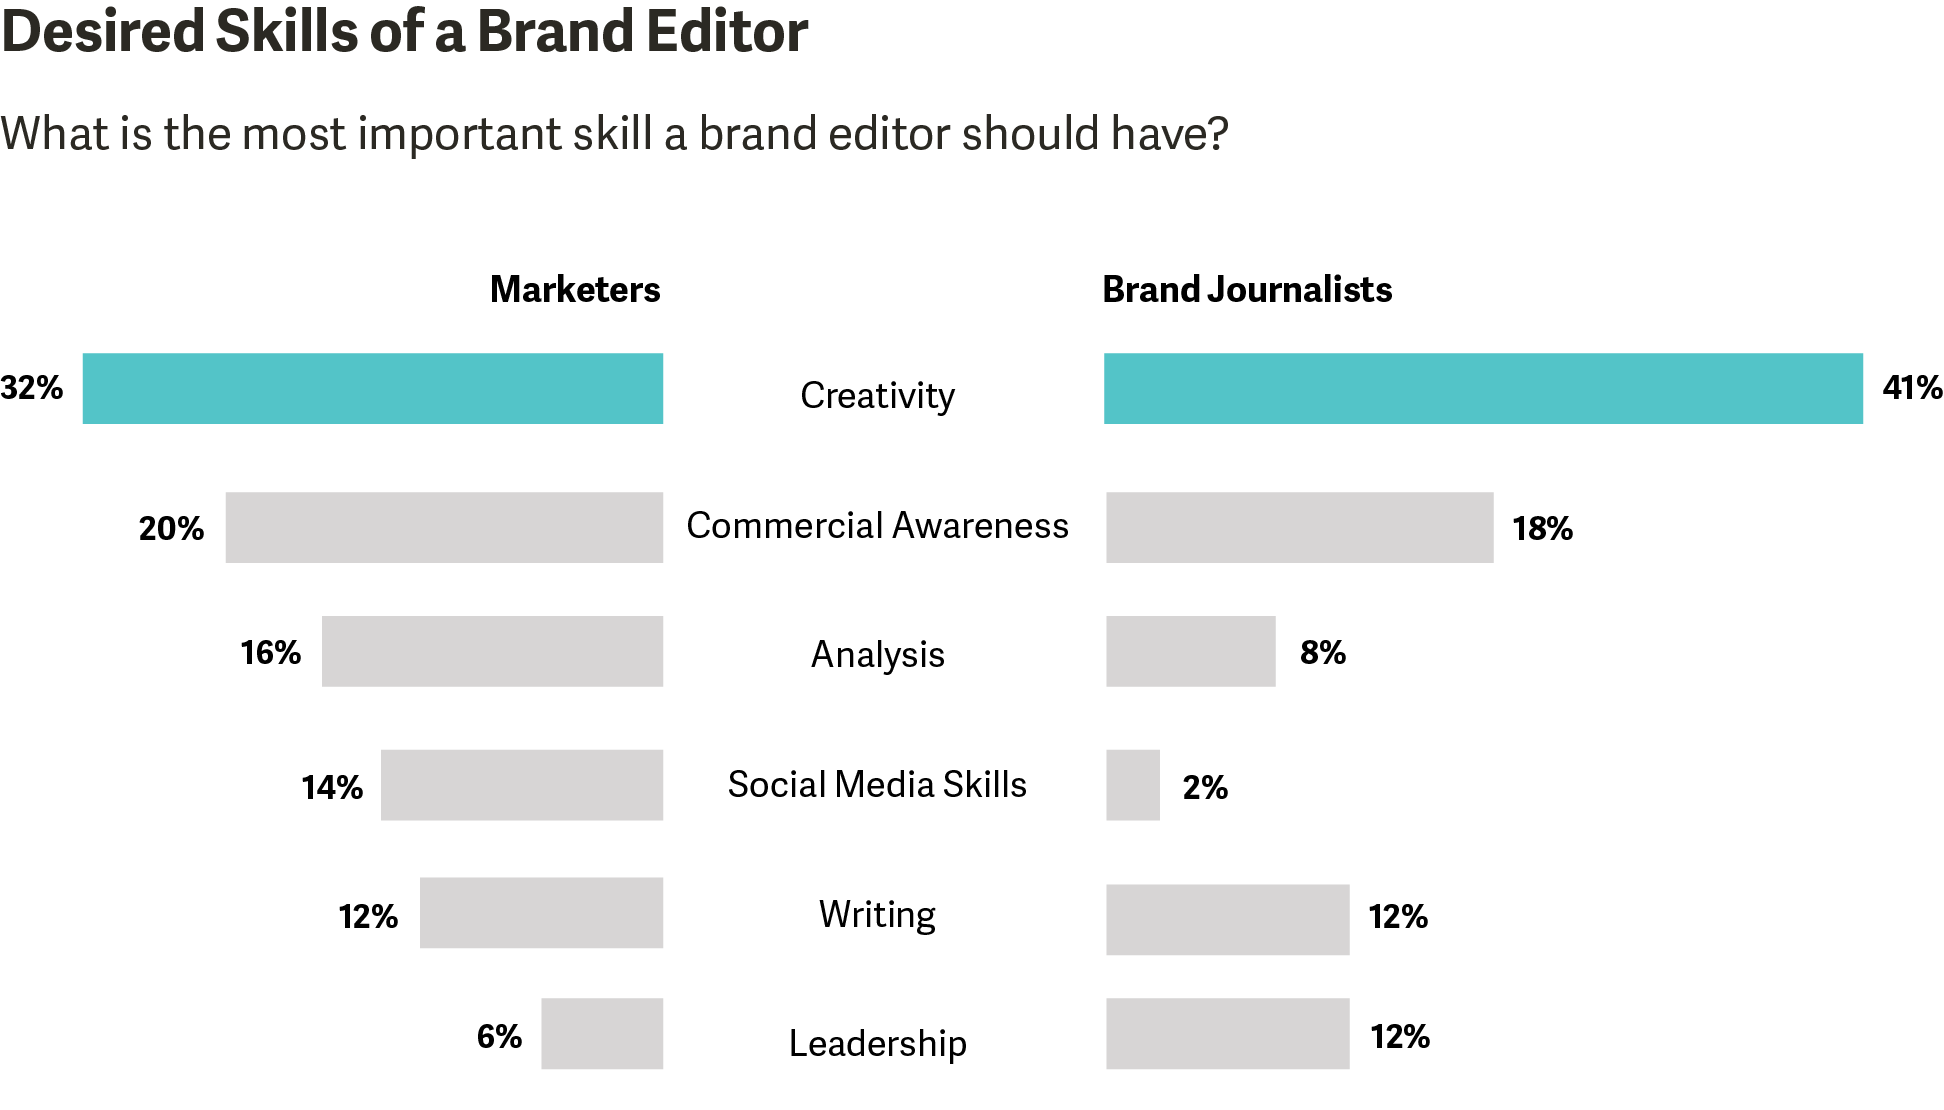 FINAL Desired Skills of a Brand Editor.png